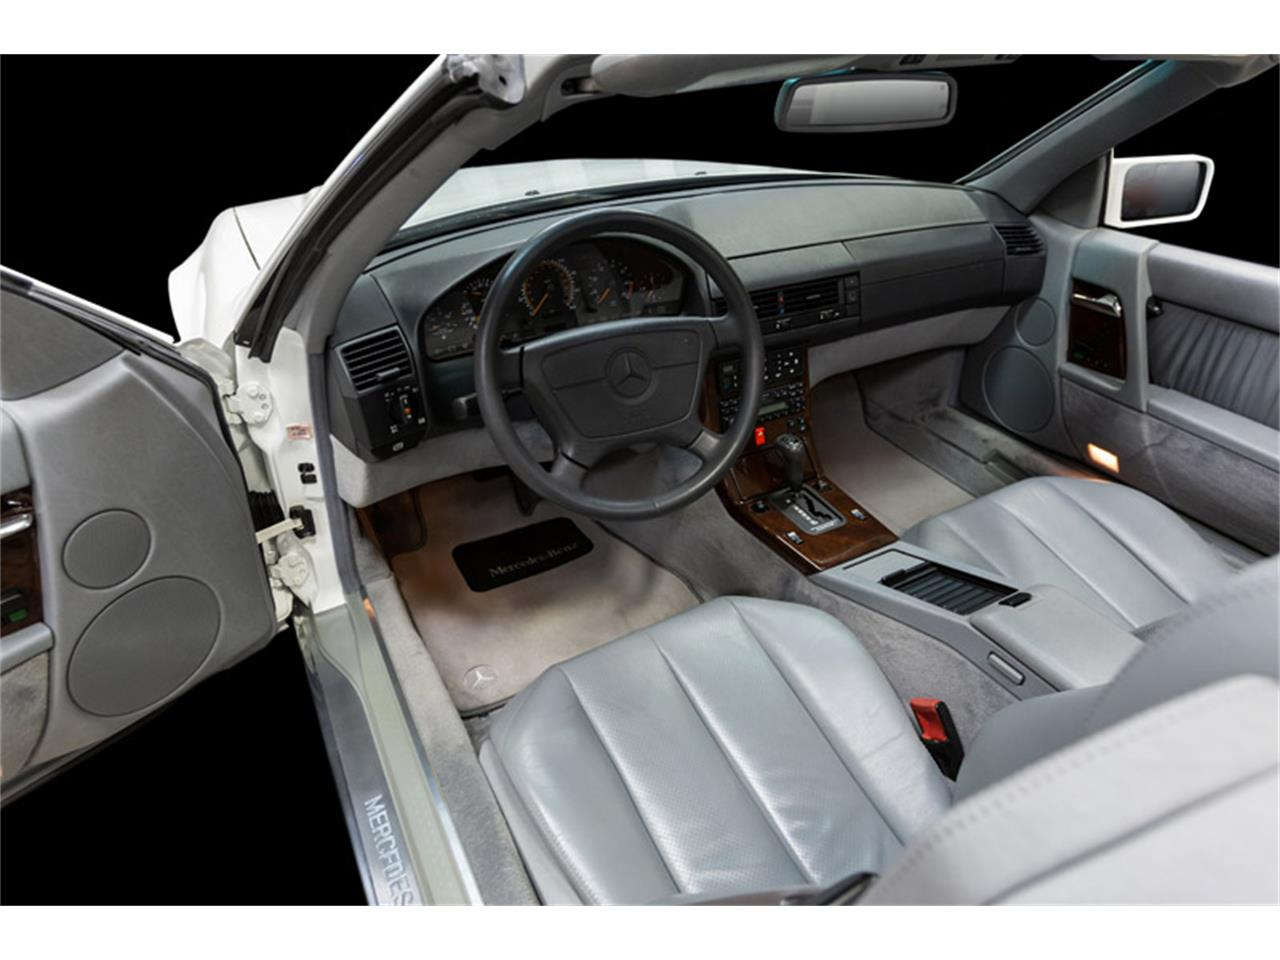 Large Picture of '95 Mercedes-Benz SL500 located in Massachusetts Auction Vehicle Offered by MS Classic Cars - QQJK